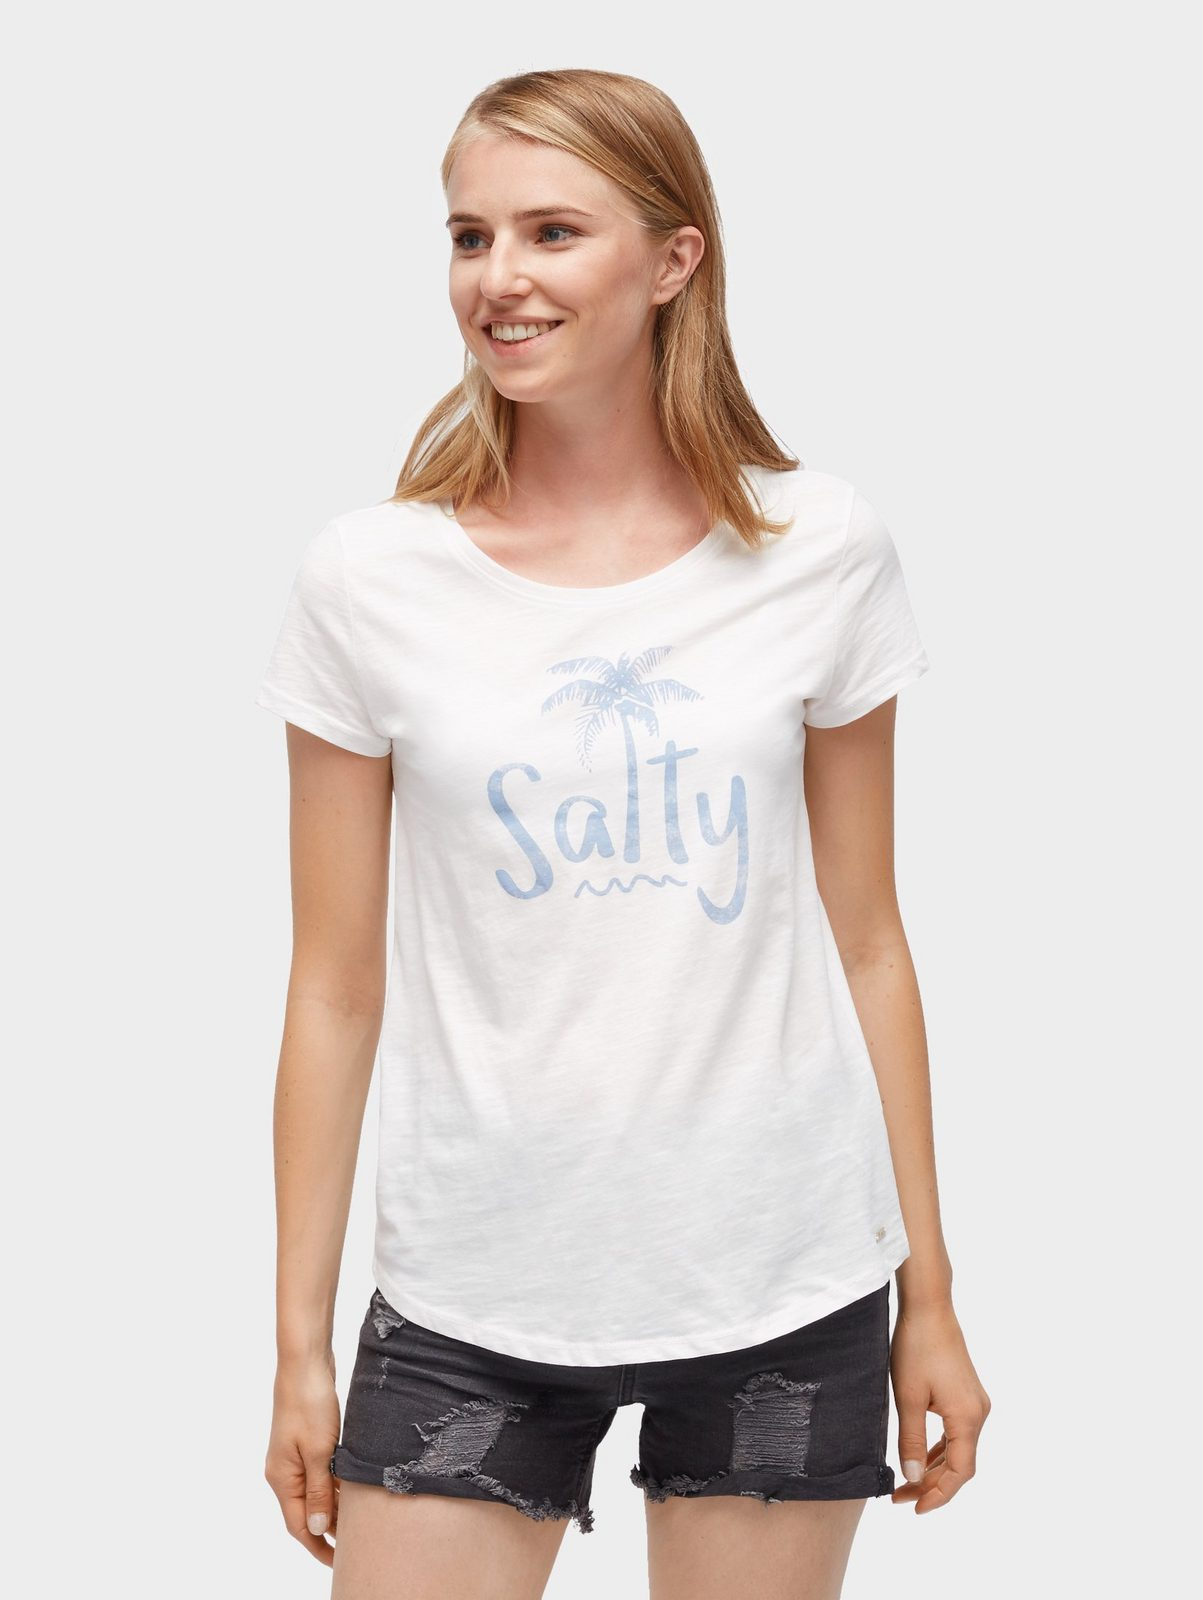 Tom Tailor Denim T-Shirt »T-Shirt mit Schrift-Print«